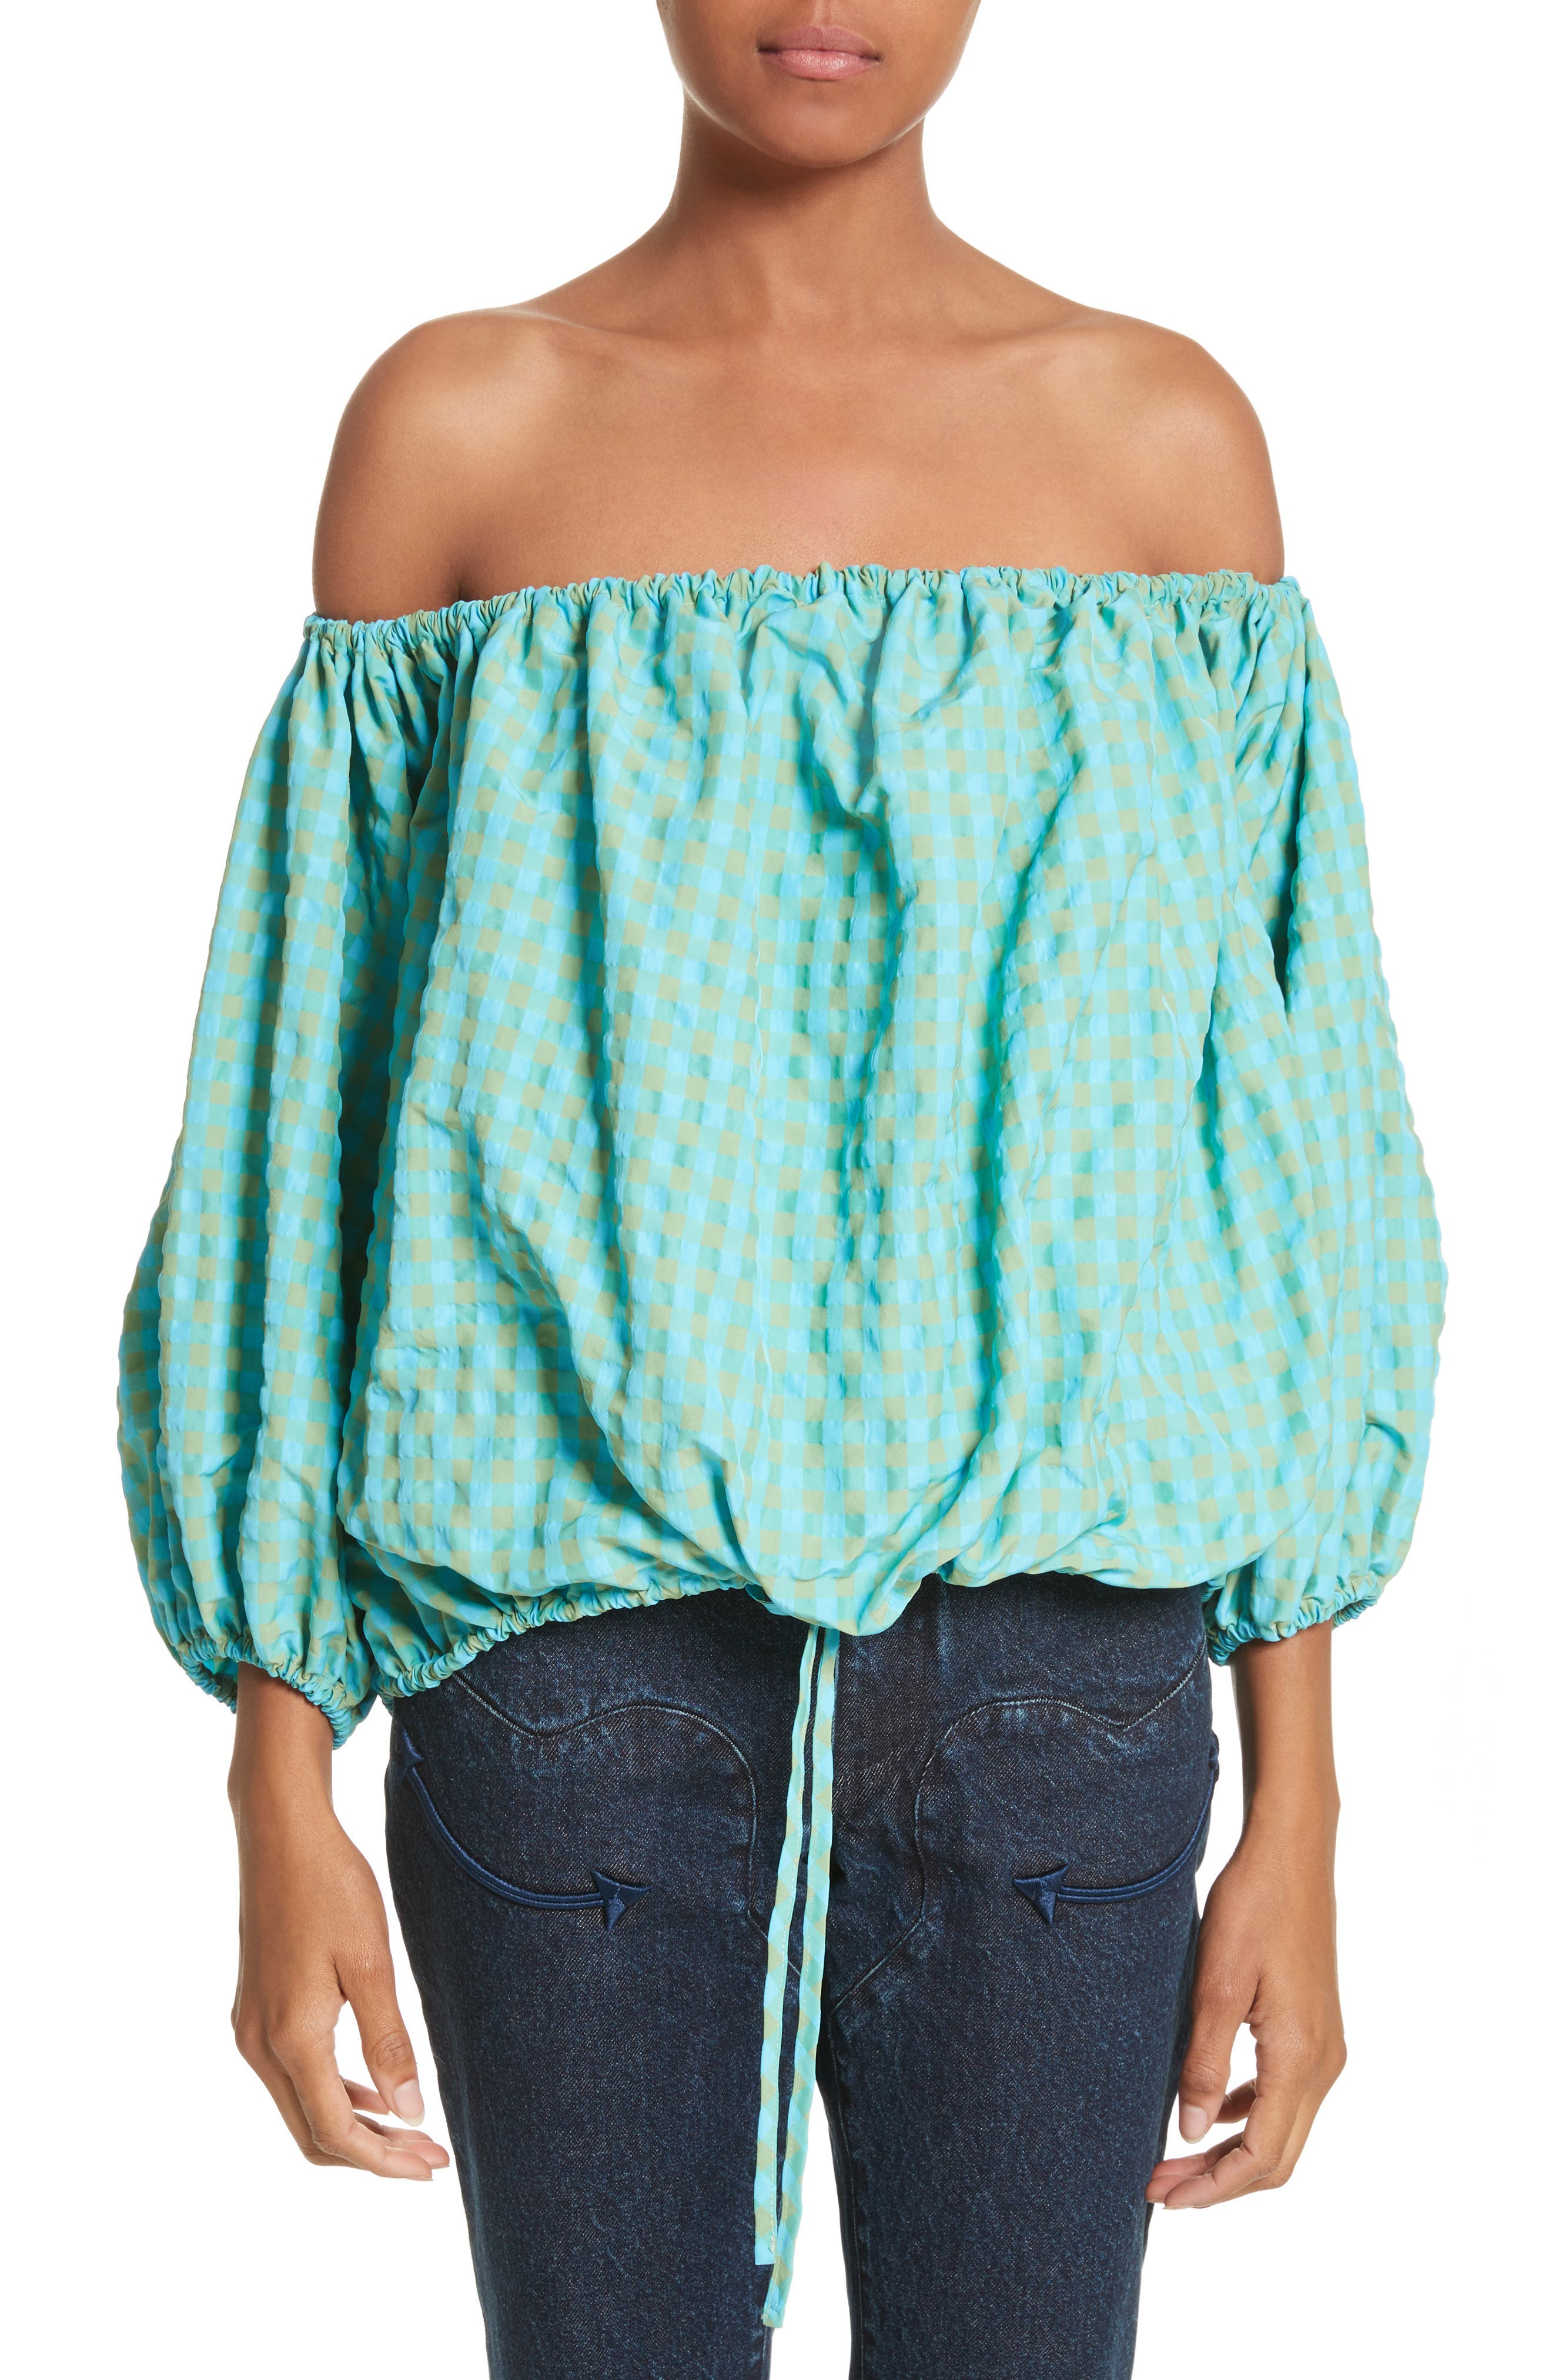 Marques'Almeida Off the Shoulder Gingham Top,                             Main thumbnail 1, color,                             Turquoise Gingham